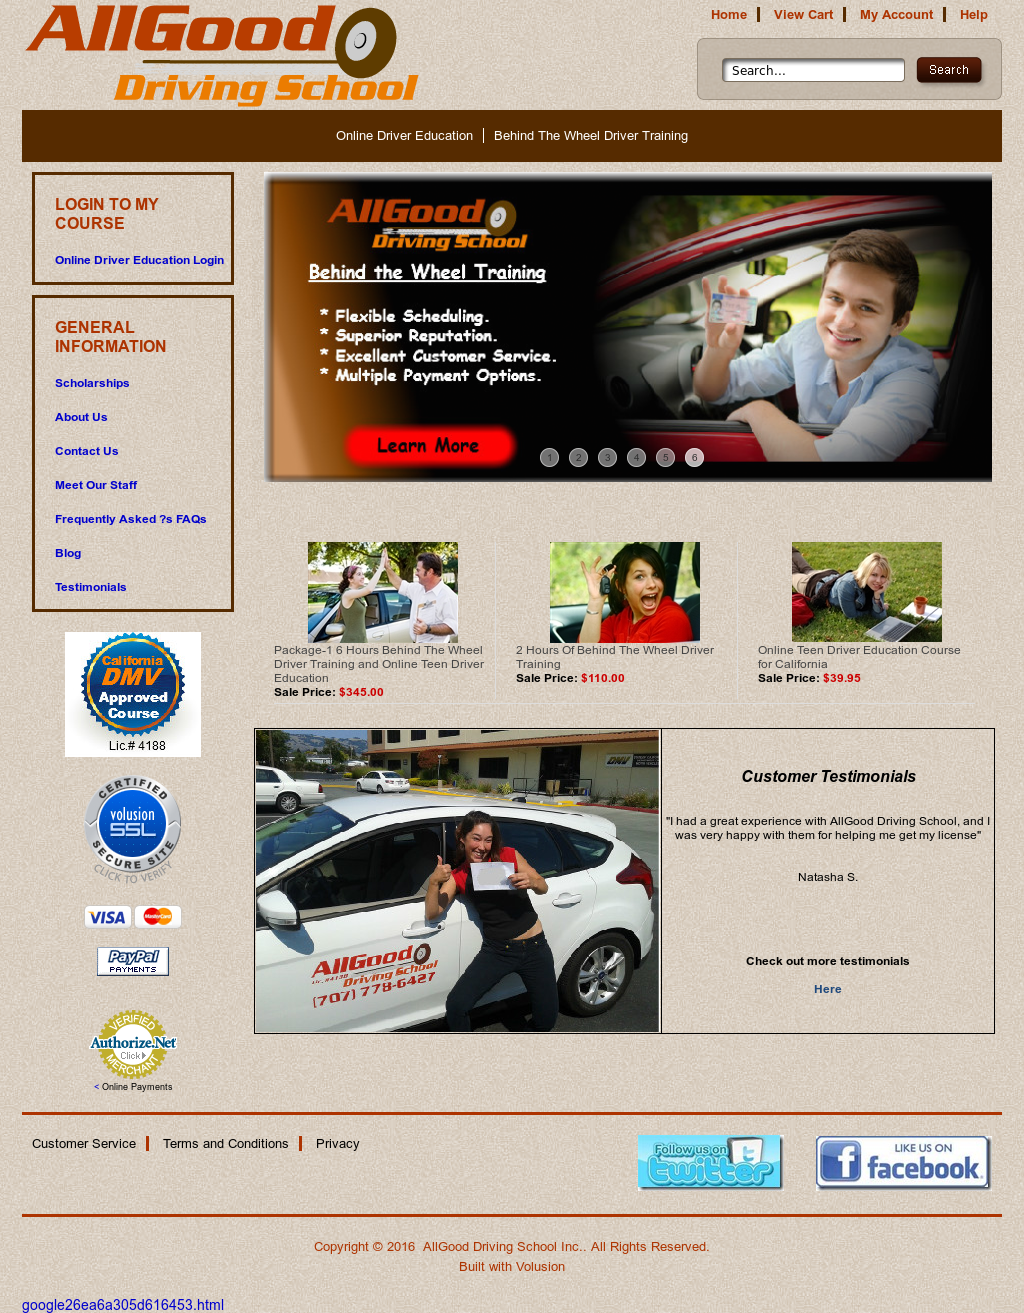 AllGood Driving School Competitors, Revenue and Employees